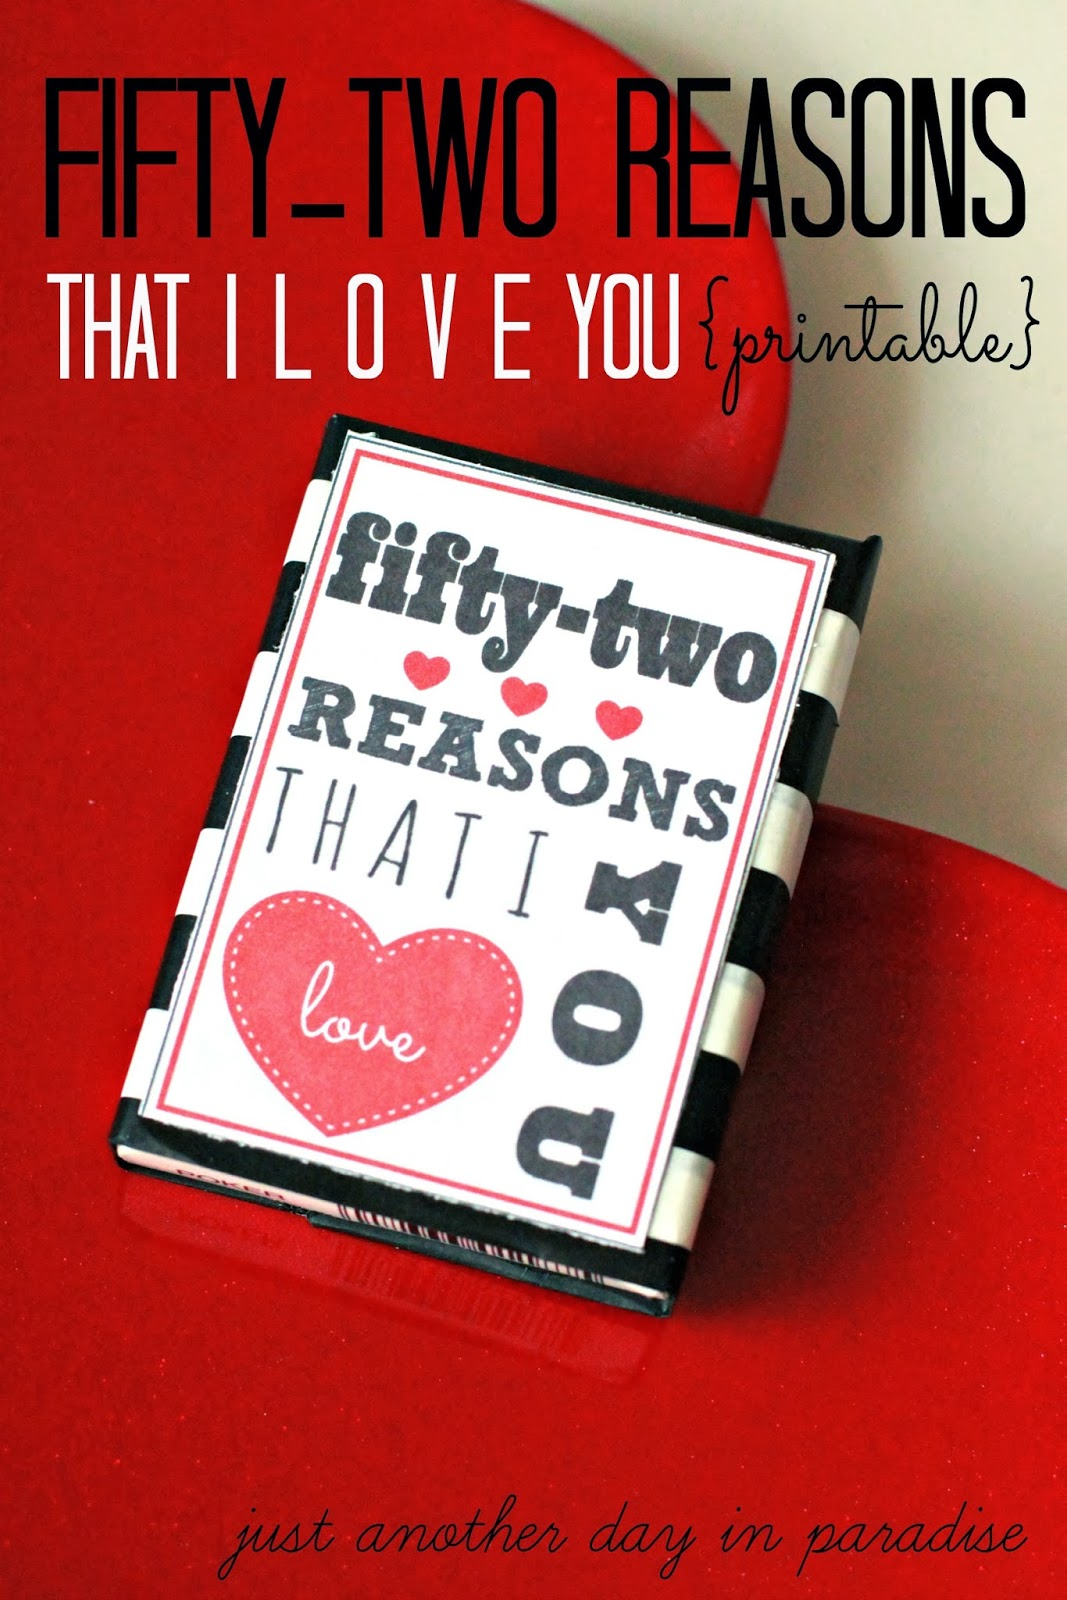 52 reasons why i love you template powerpoint - larissa another day 52 reasons i love you printable a